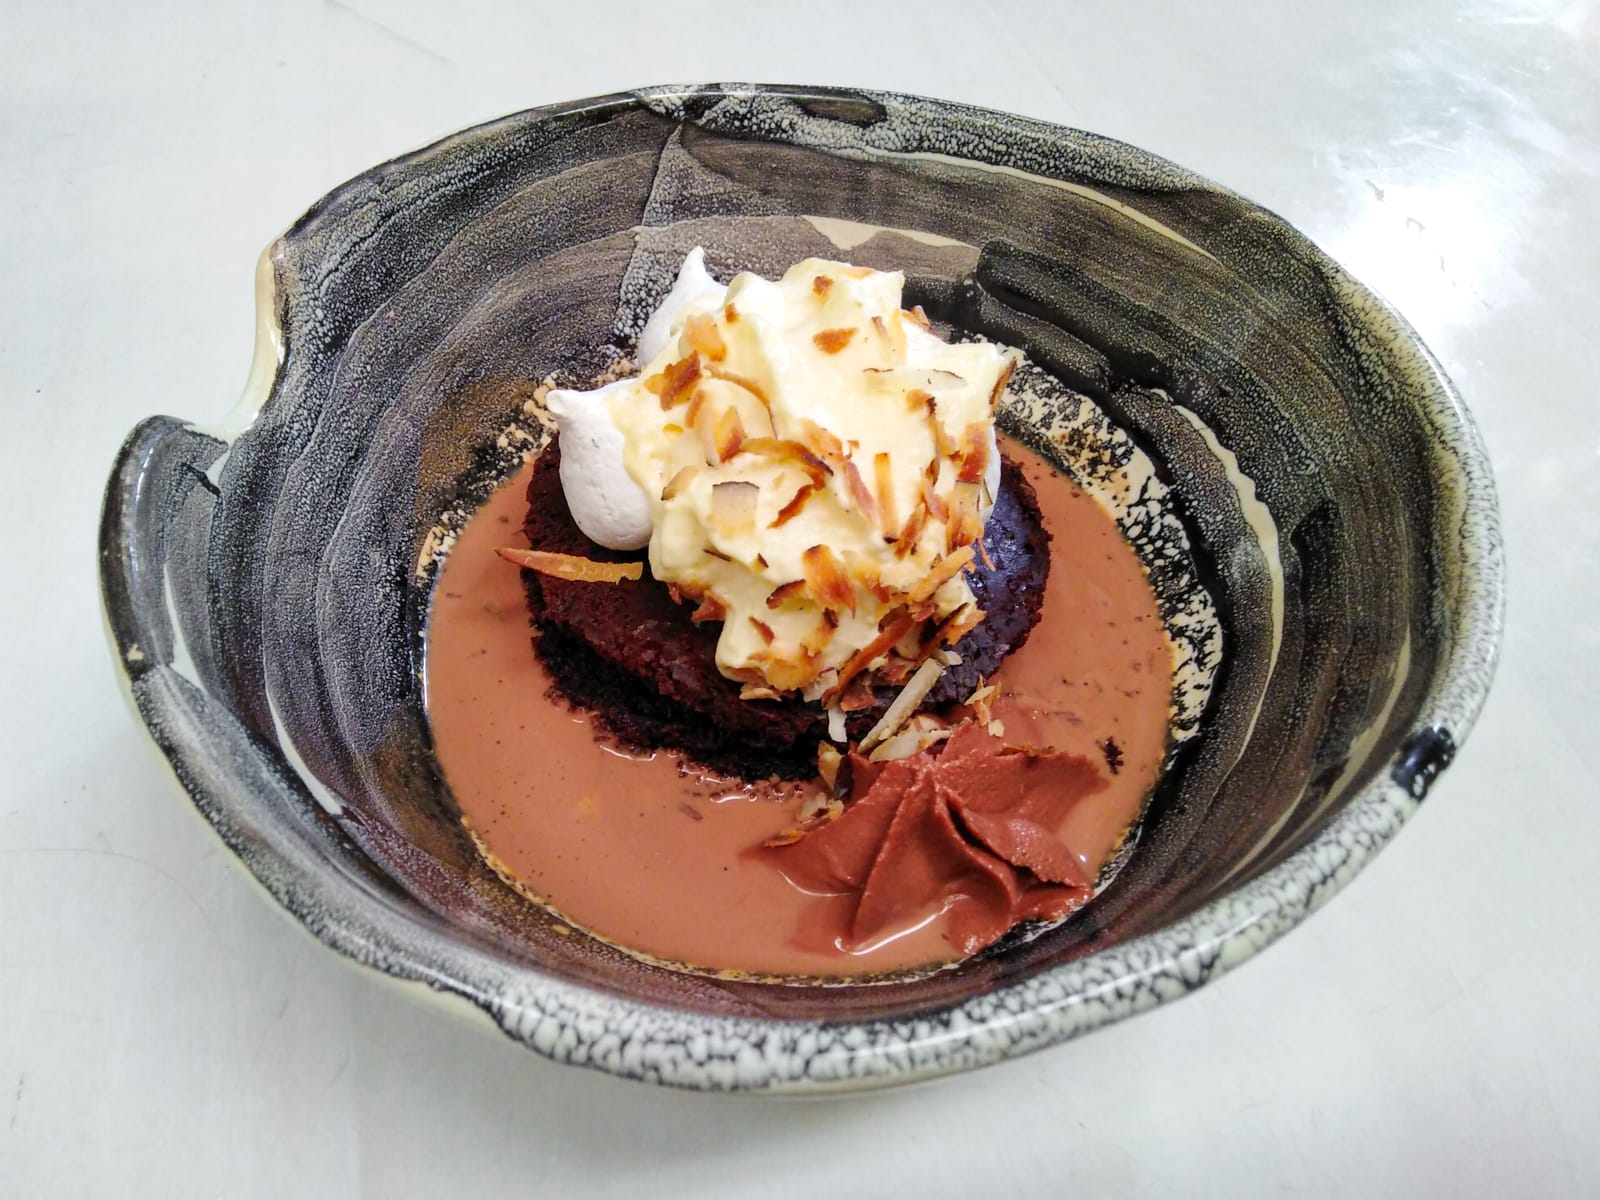 Devil's food cake, coconut pavlova, 76% cacao mousse, dark chocolate and chipotle soup